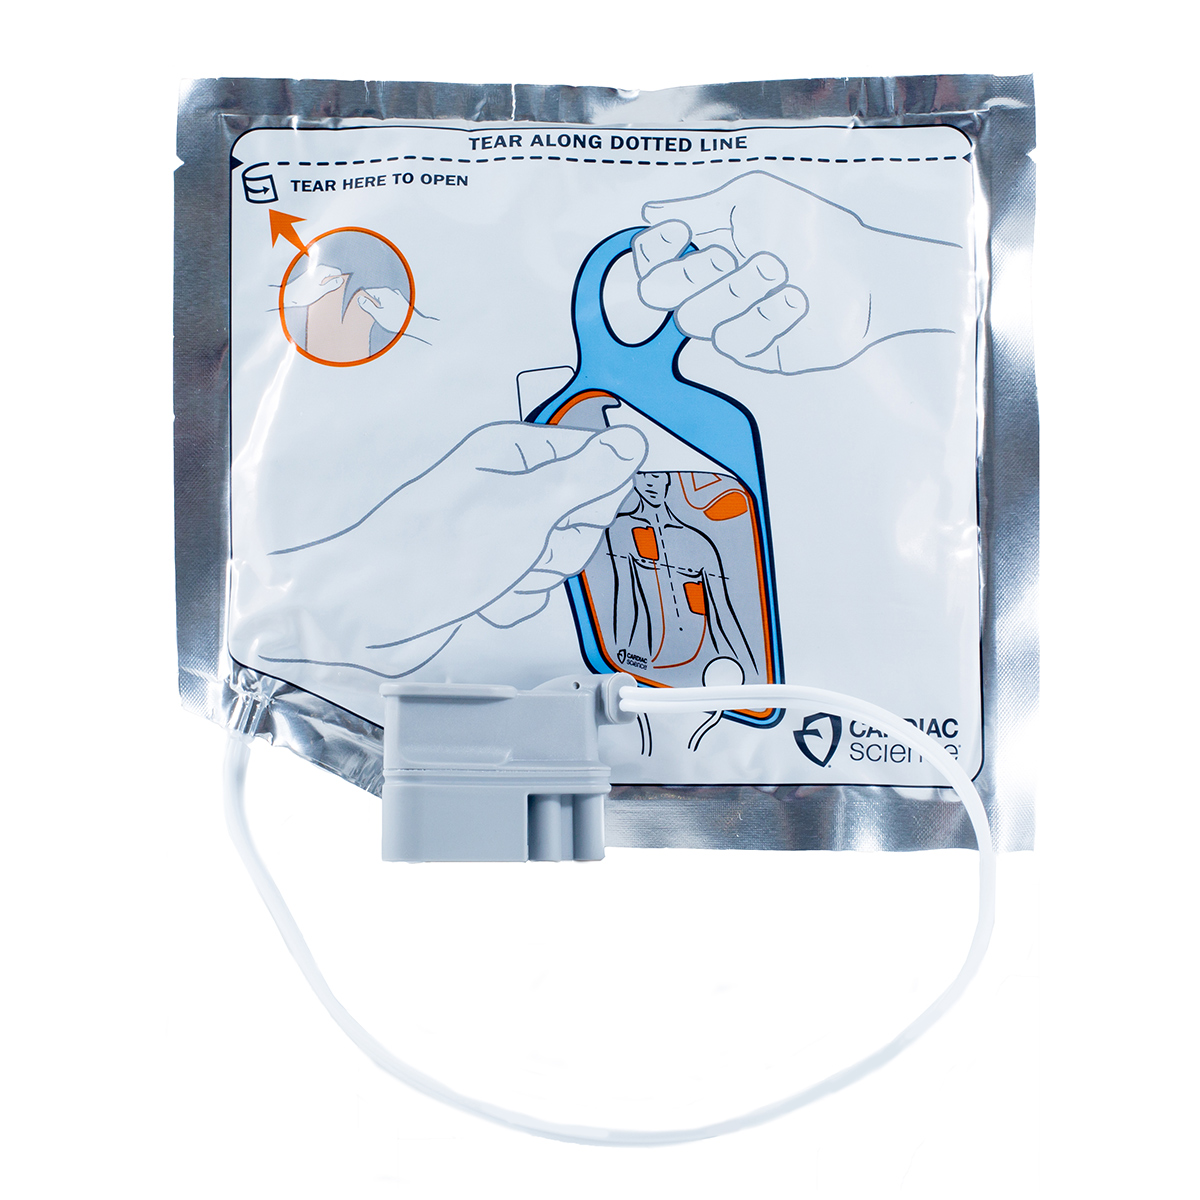 Cardiac science™ Powerheart® G5 Adult Defibrillator Pads